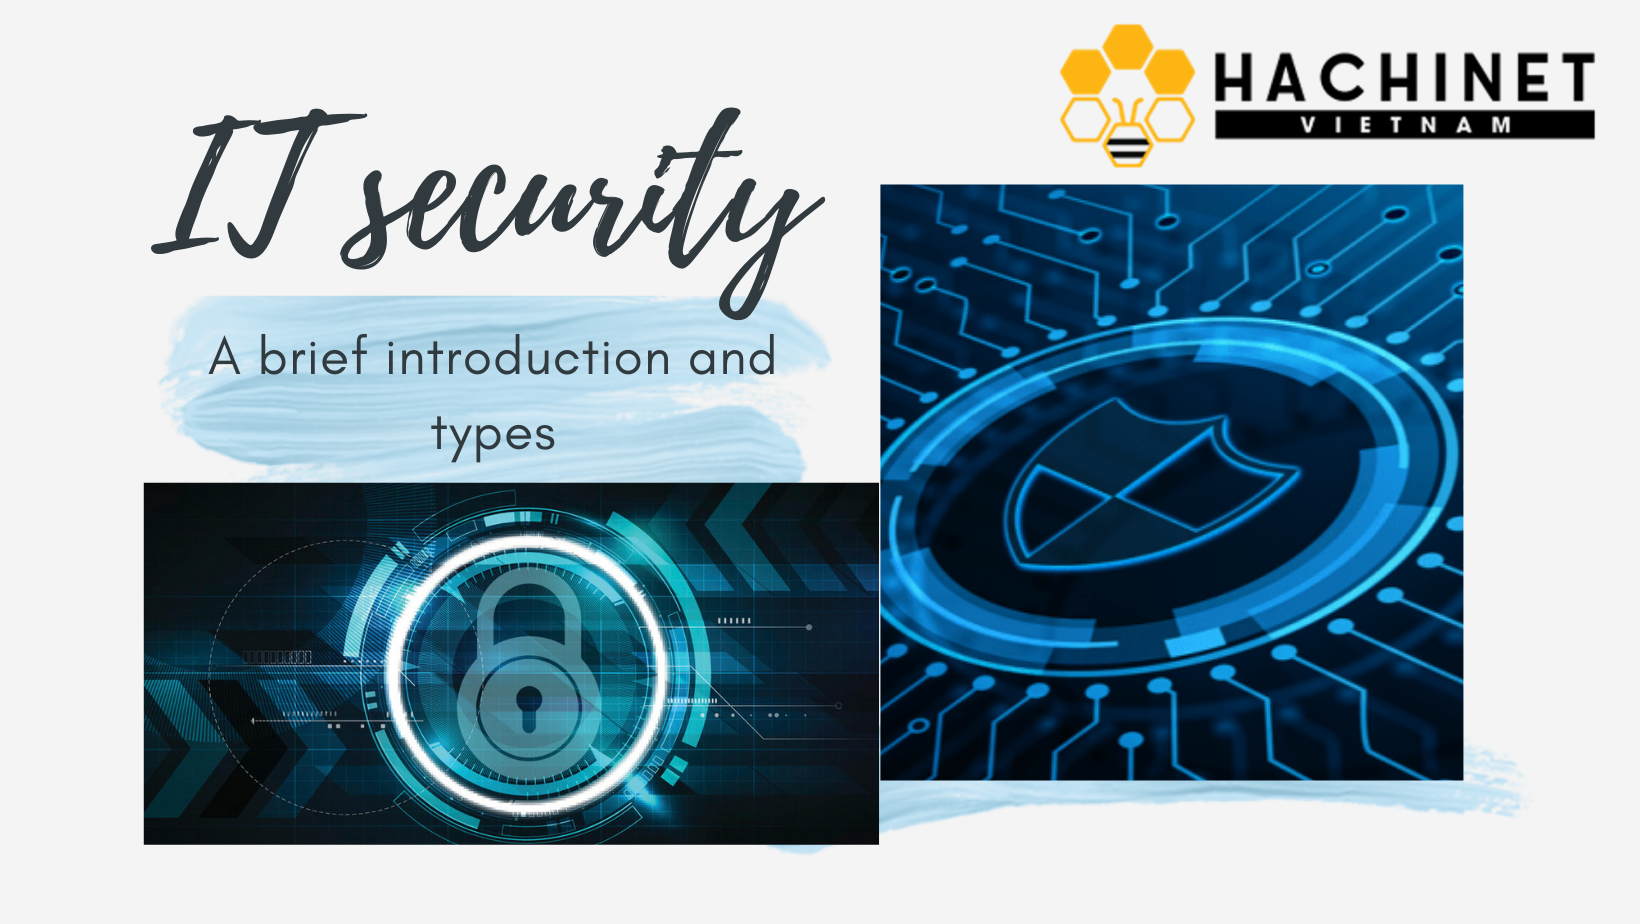 IT security - a brief introduction and types